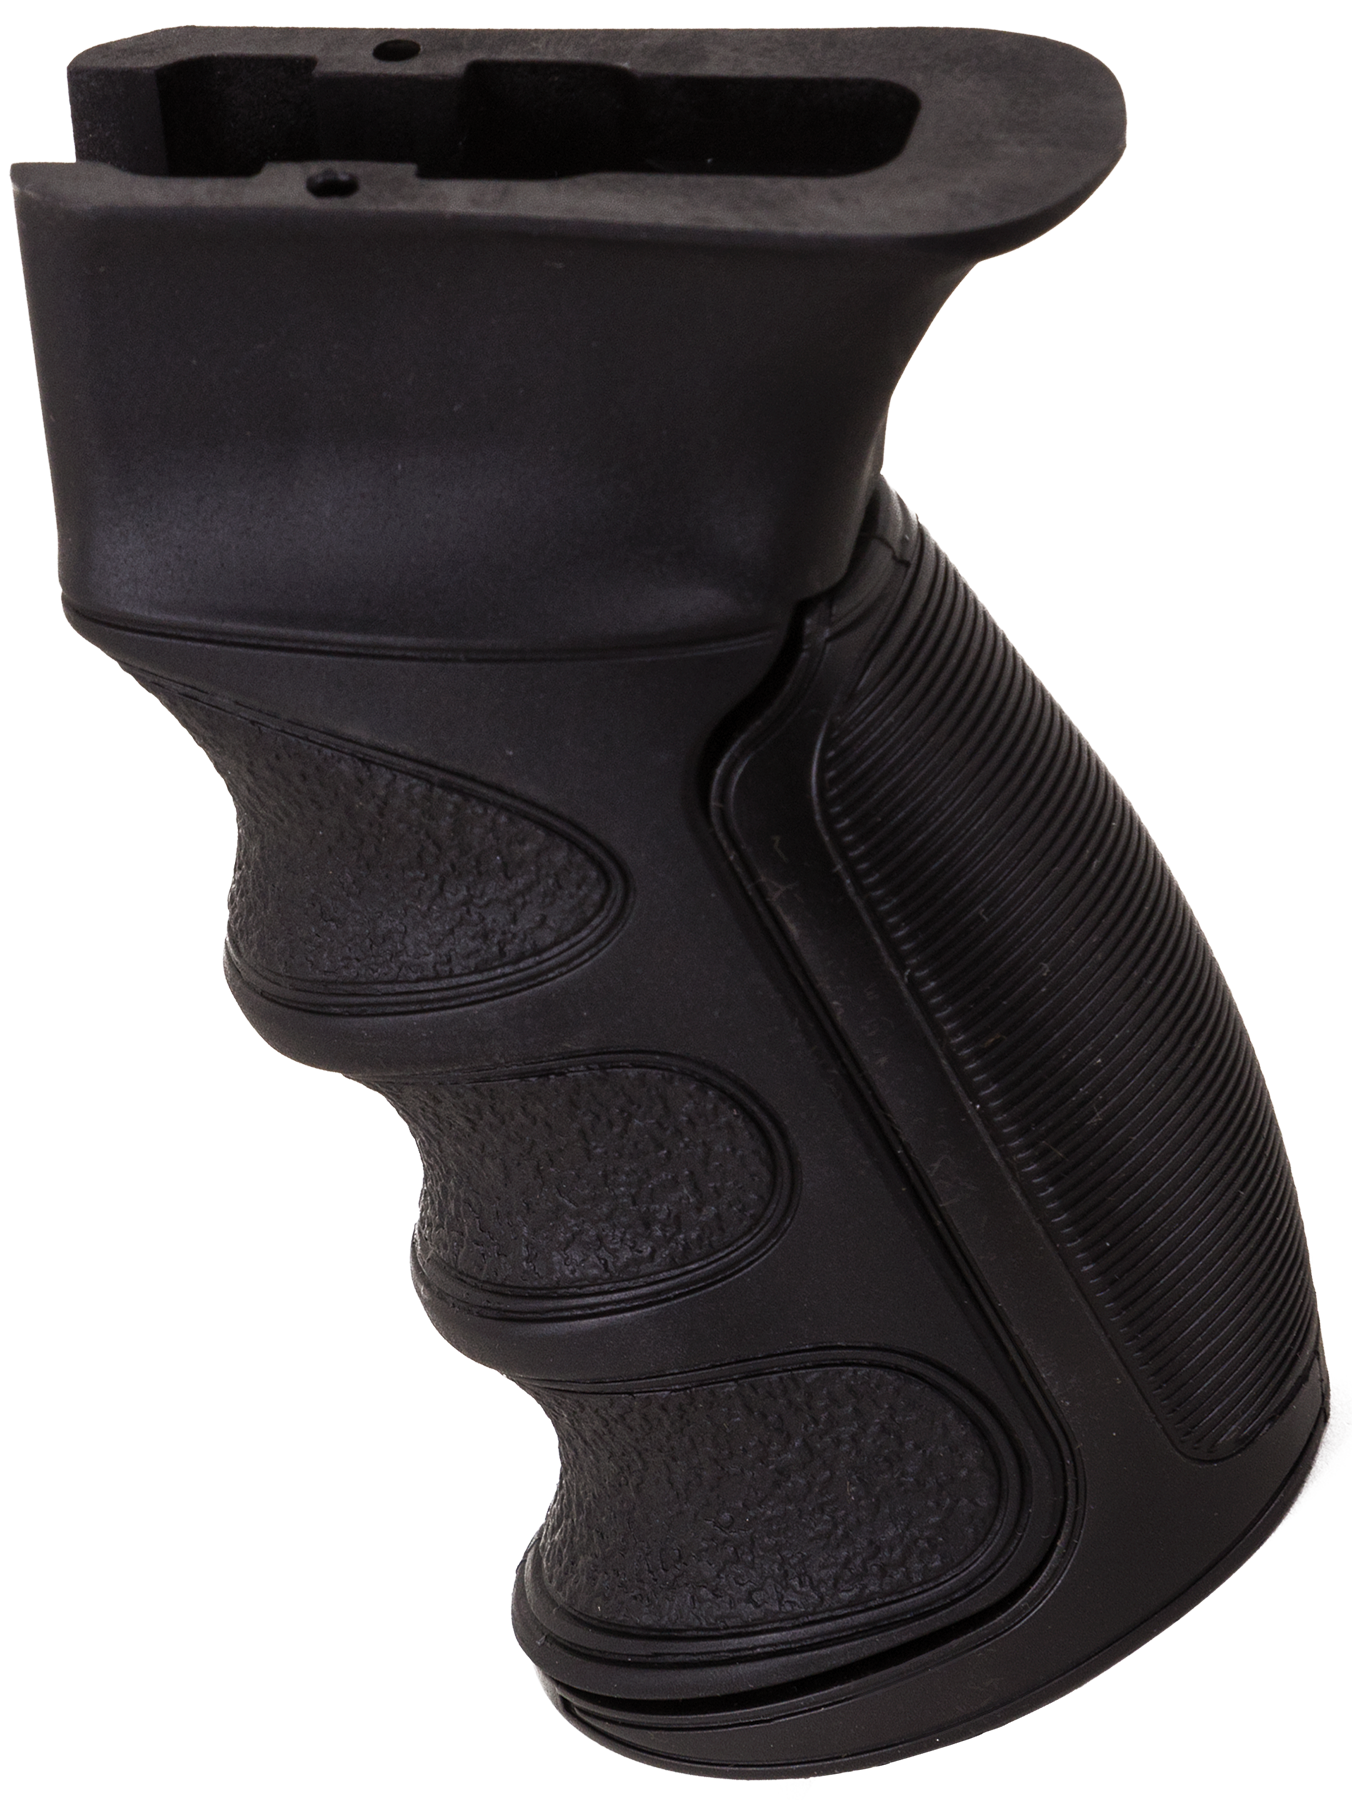 Advanced Technology A5102346 X1 Finger Groove Pistol Grip AK-47 Glass-Filled Nylon Black